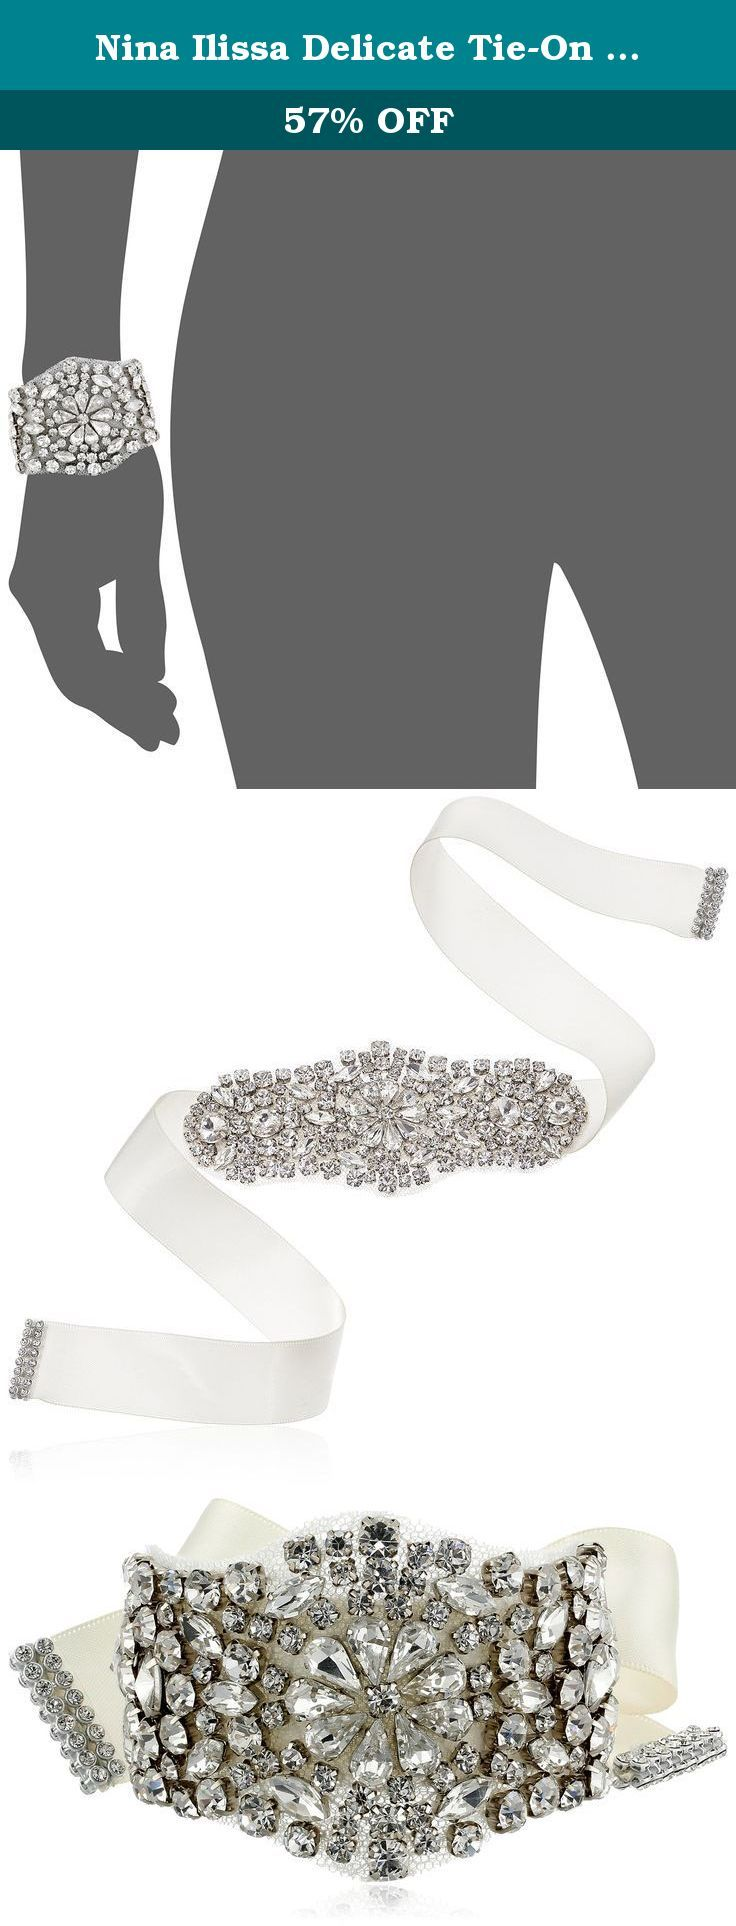 Nina Ilissa Delicate Tie-On Satin Ribbon and Crystal Bracelet. Art Deco-inspired tie bracelet featuring satin ribbon and elaborate crystal display backed with delicate mesh. Imported.